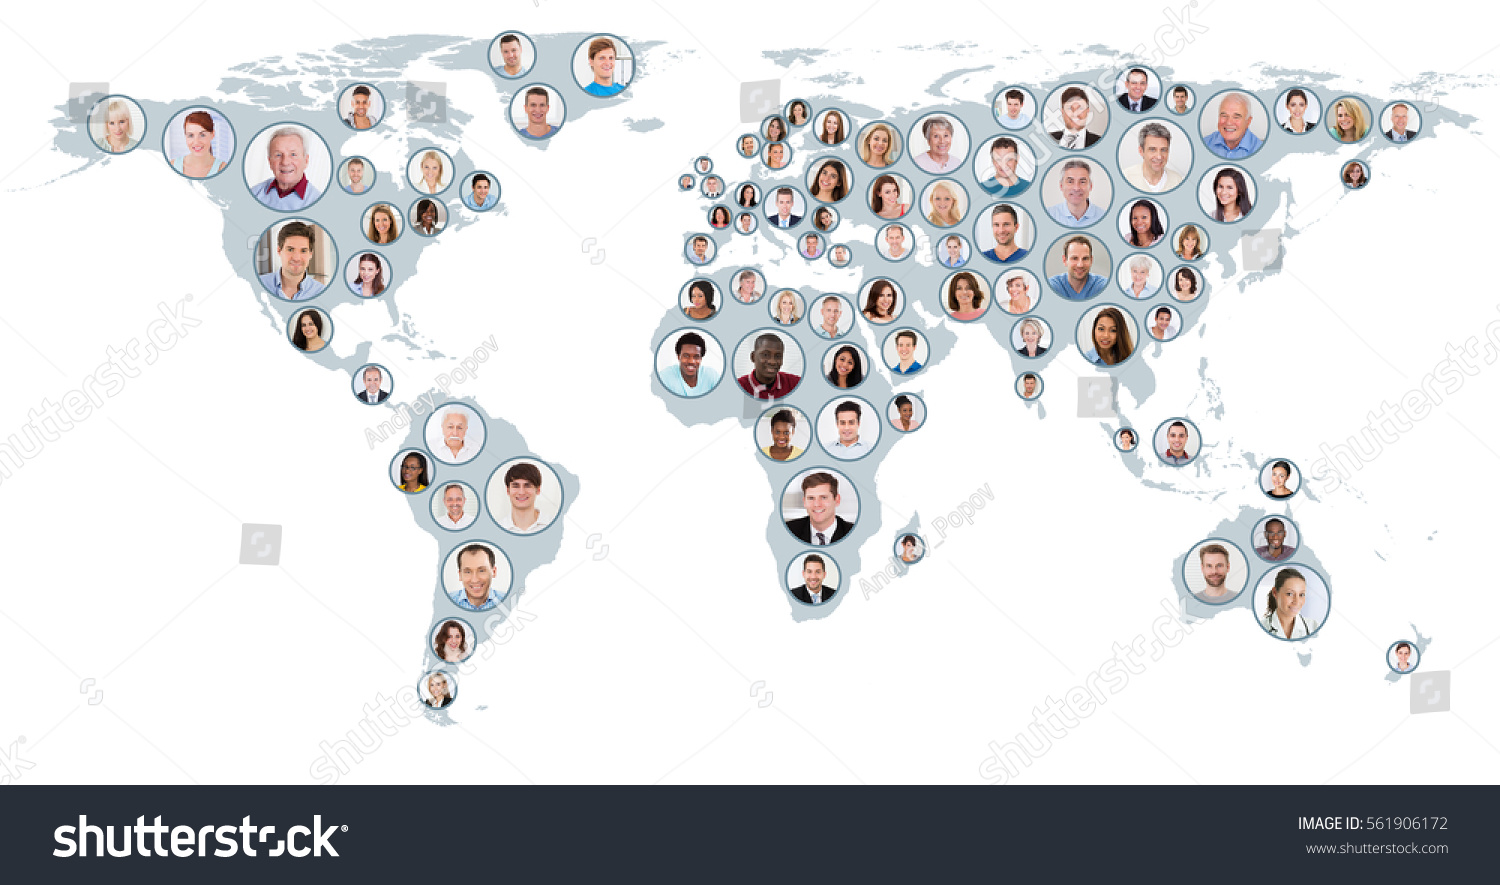 Collage multiethnic people on world map imagen de archivo stock collage of multiethnic people on world map at white background global business concept gumiabroncs